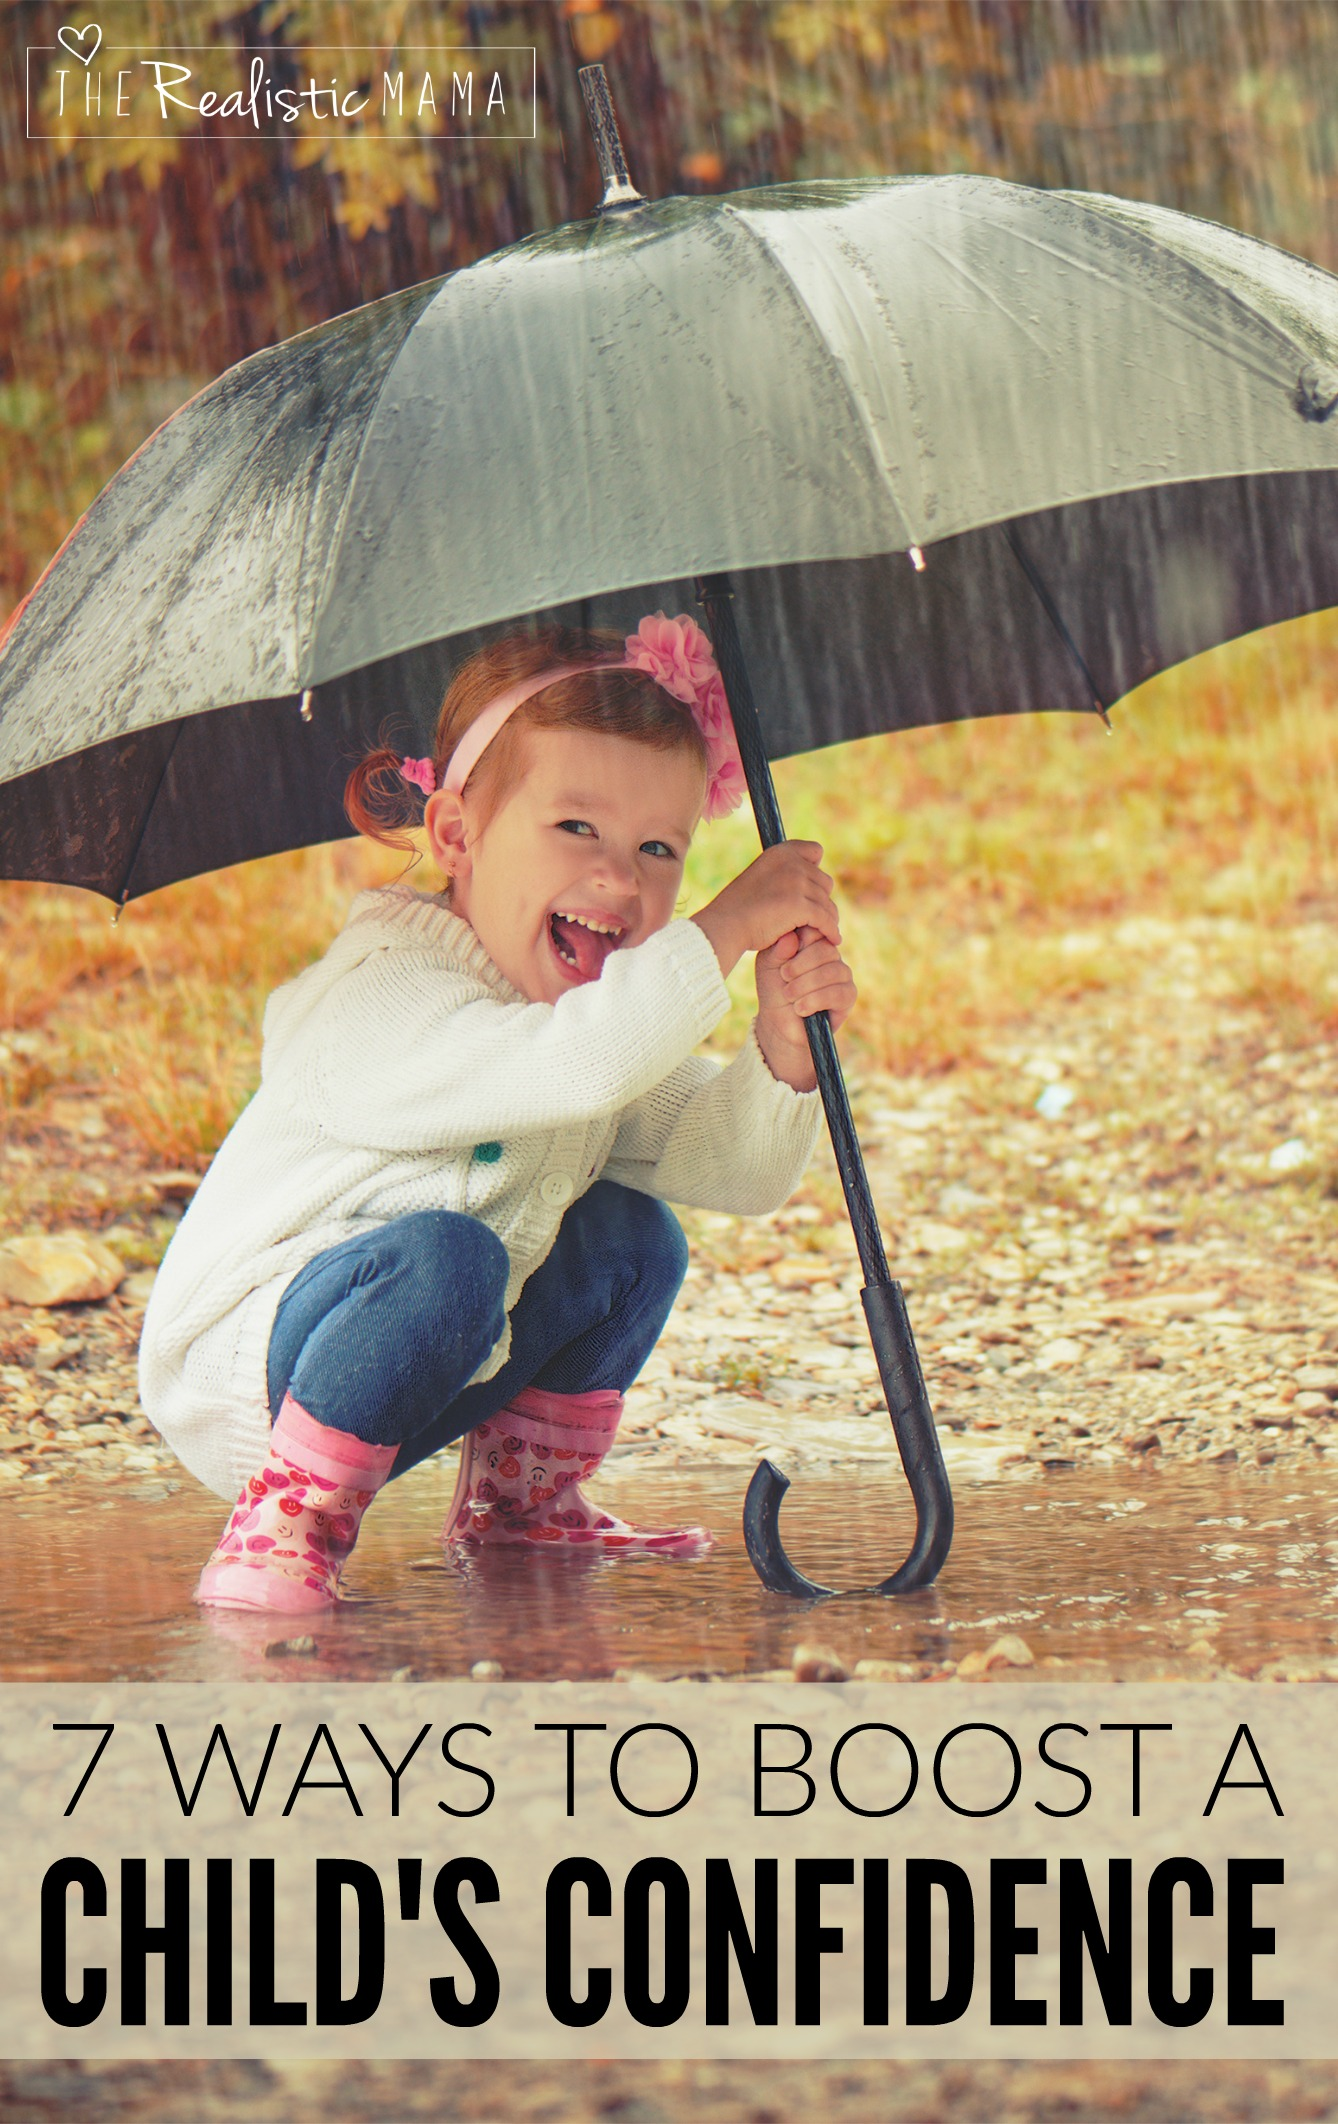 7 Ways to Quickly Boost a Child's Confidence